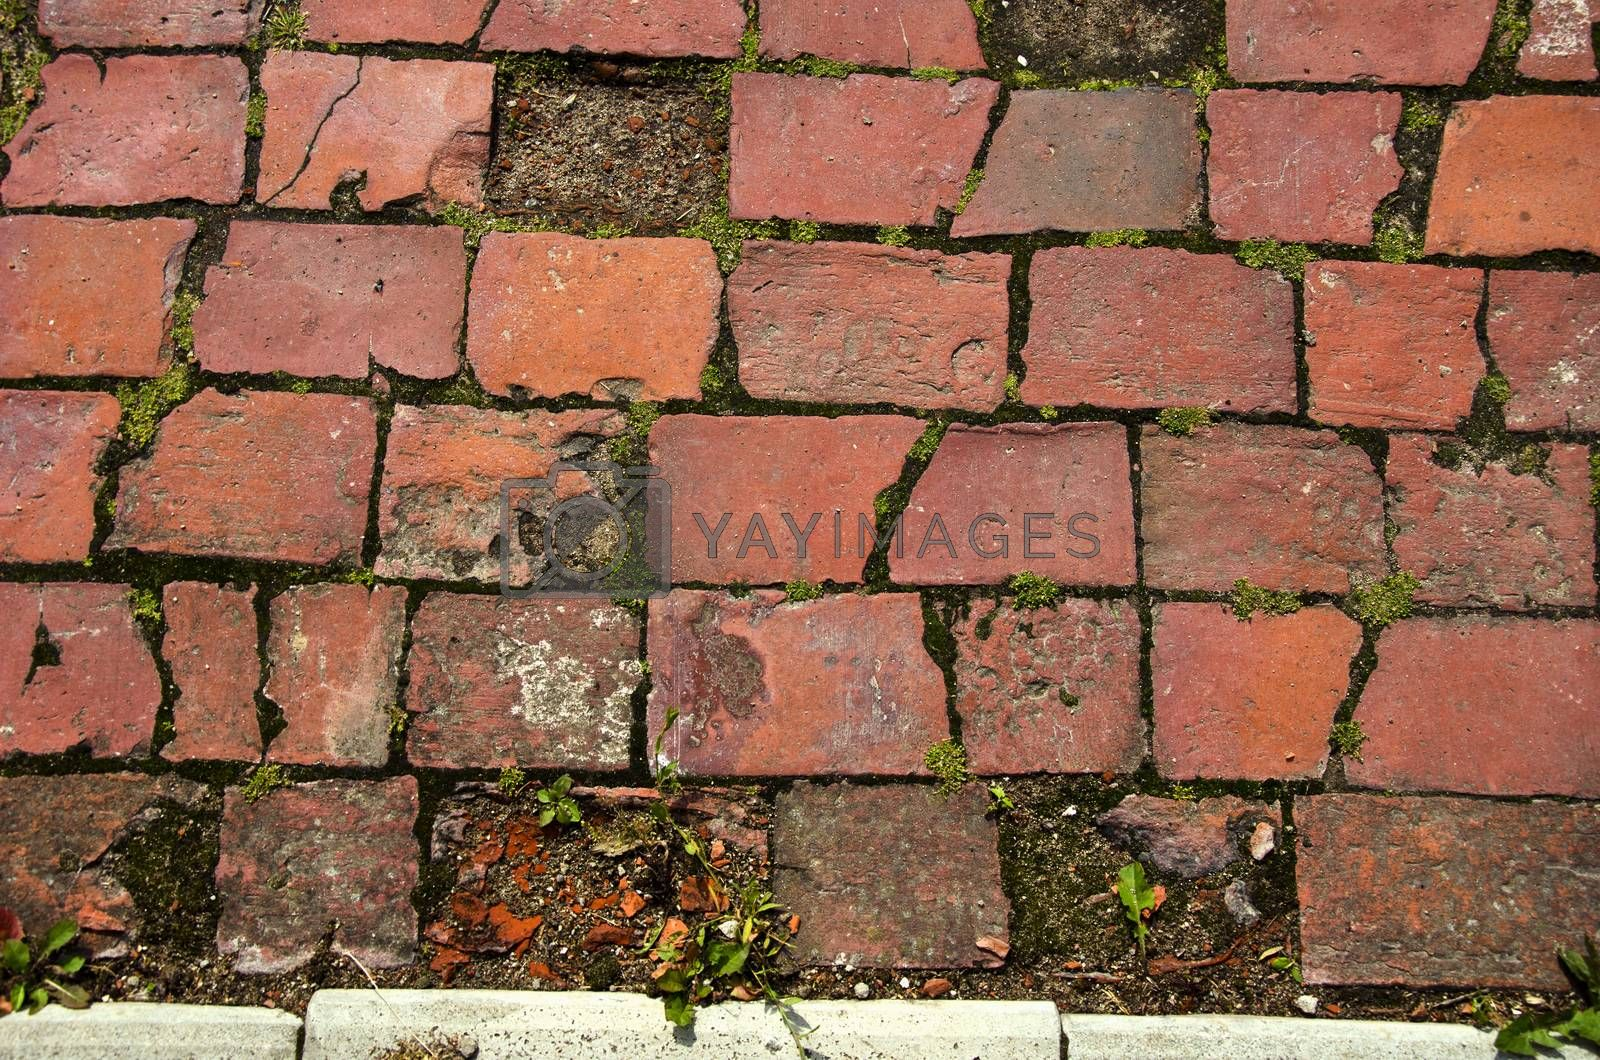 Royalty free image of Old  red brick decorative pavement background by alis_photo